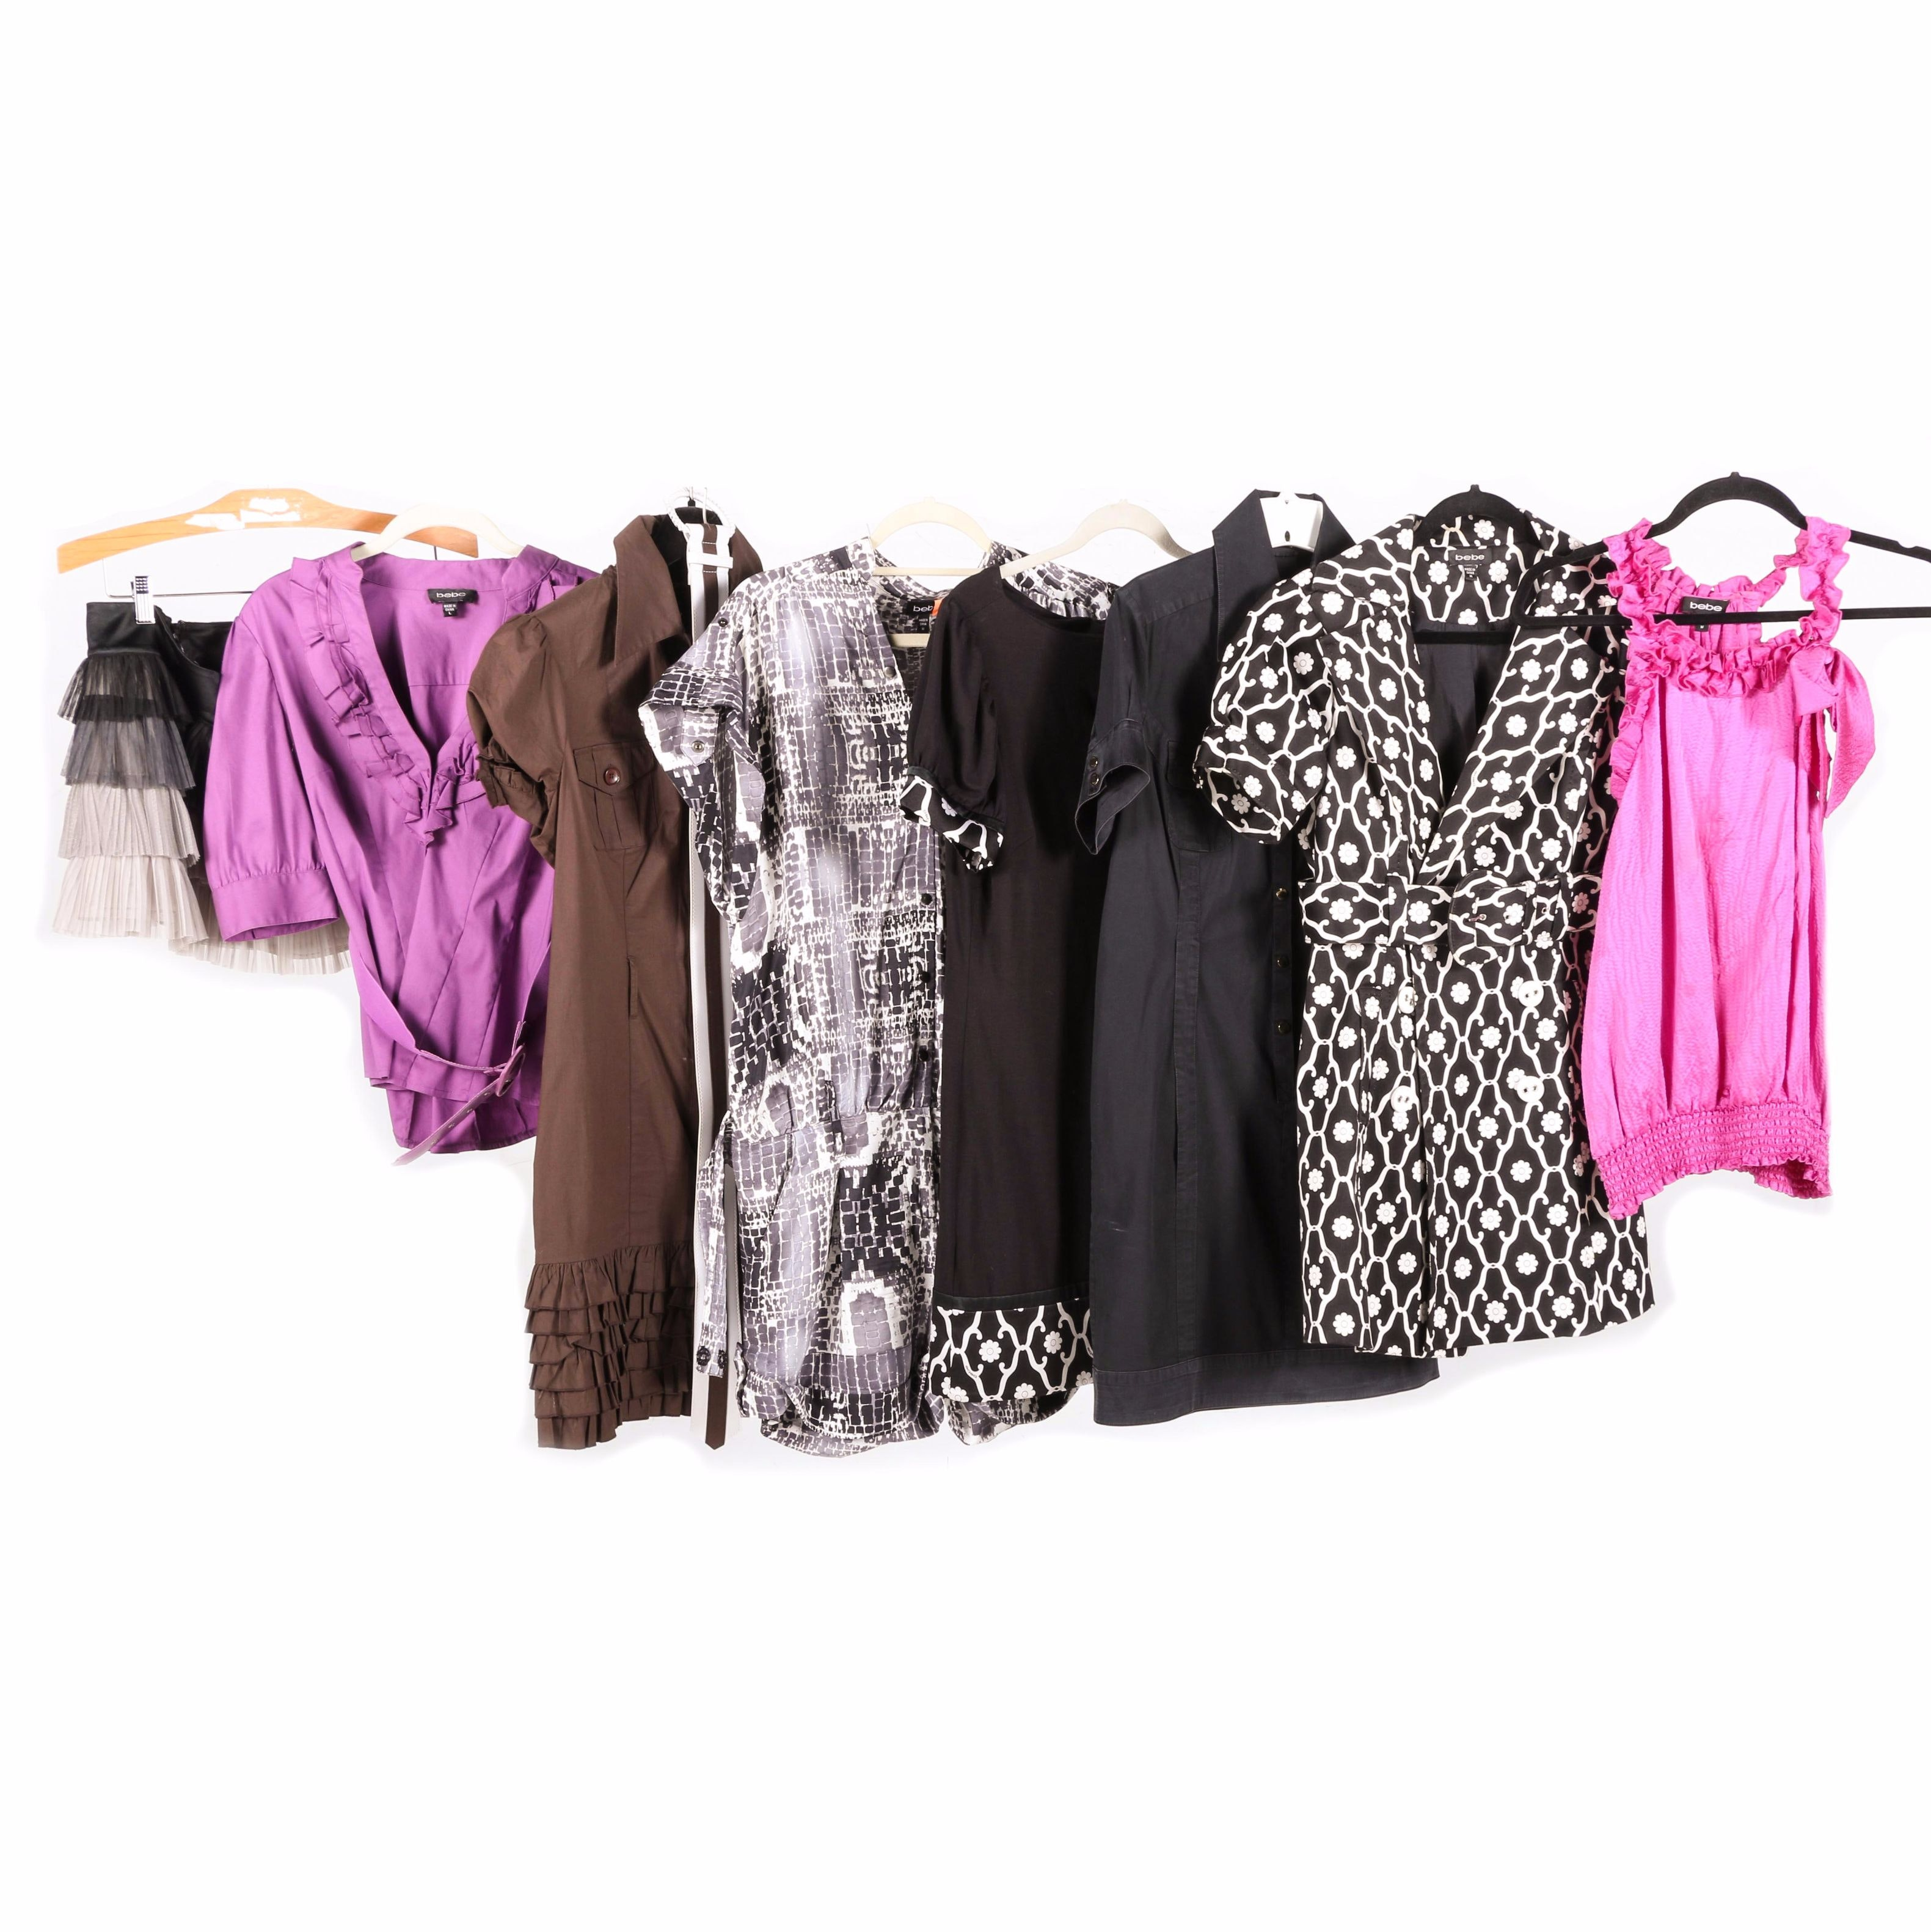 Women's Tops and Dresses from Bebe